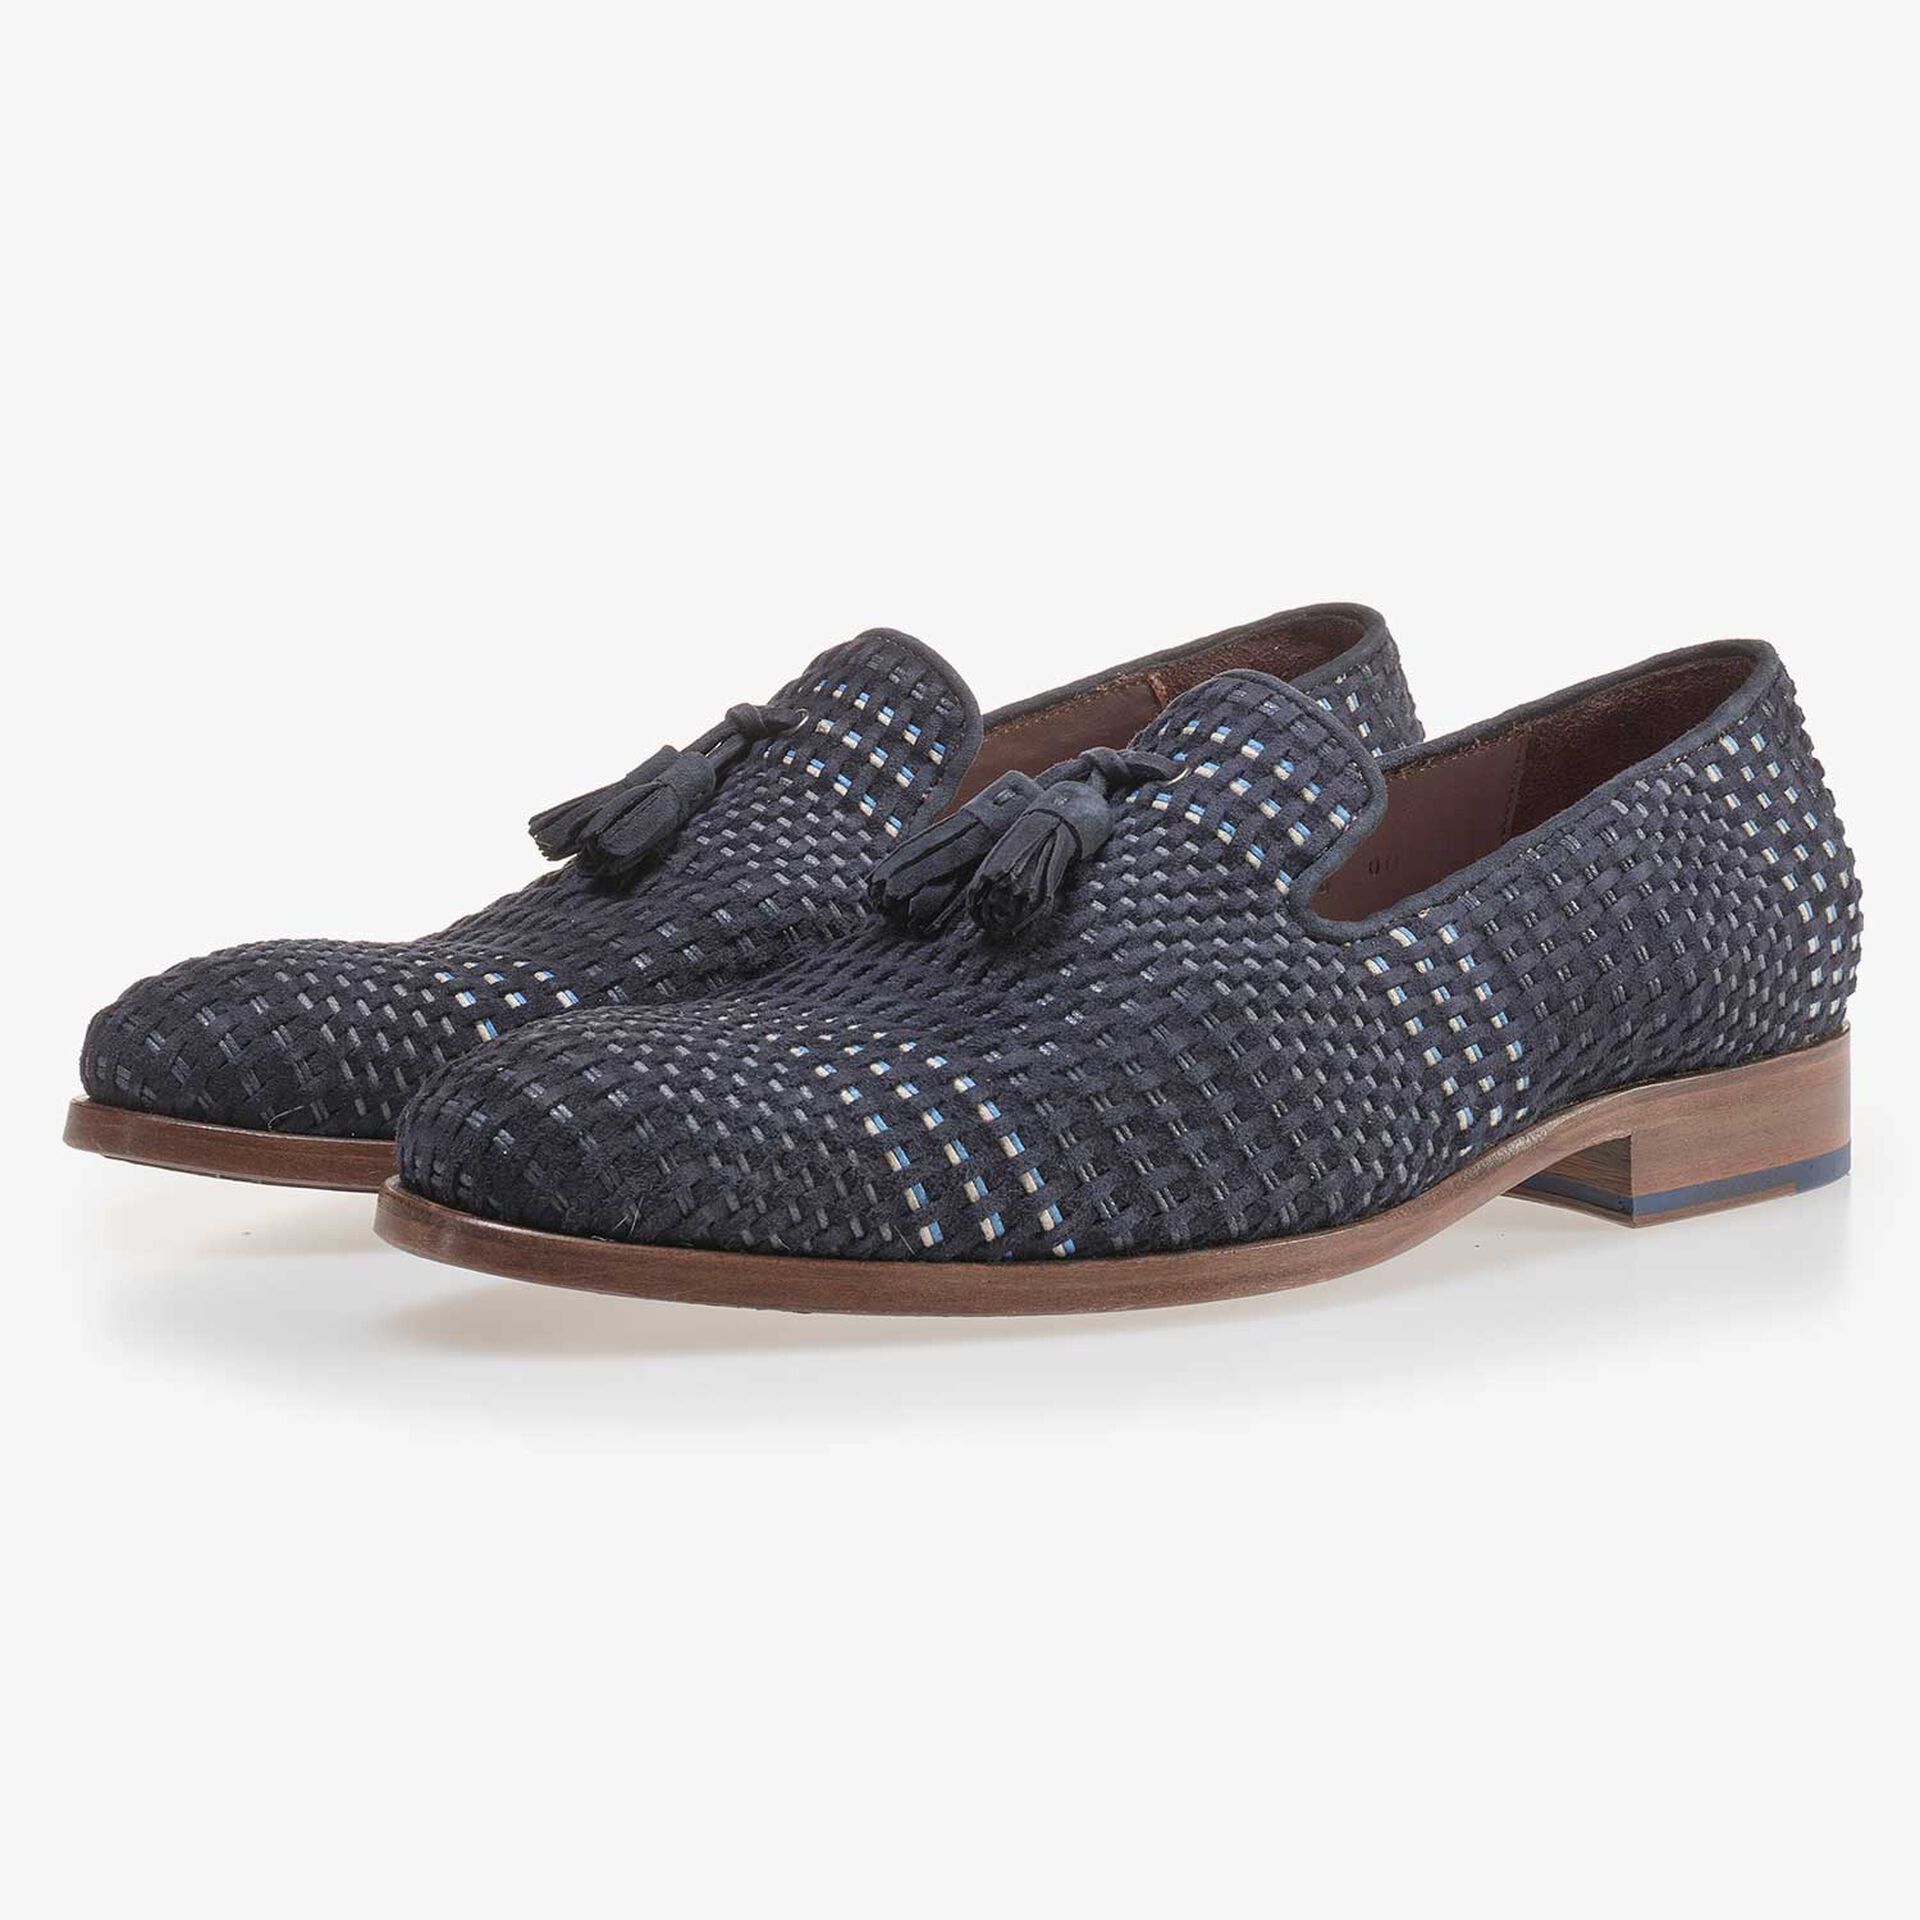 Dark blue braided suede leather loafer